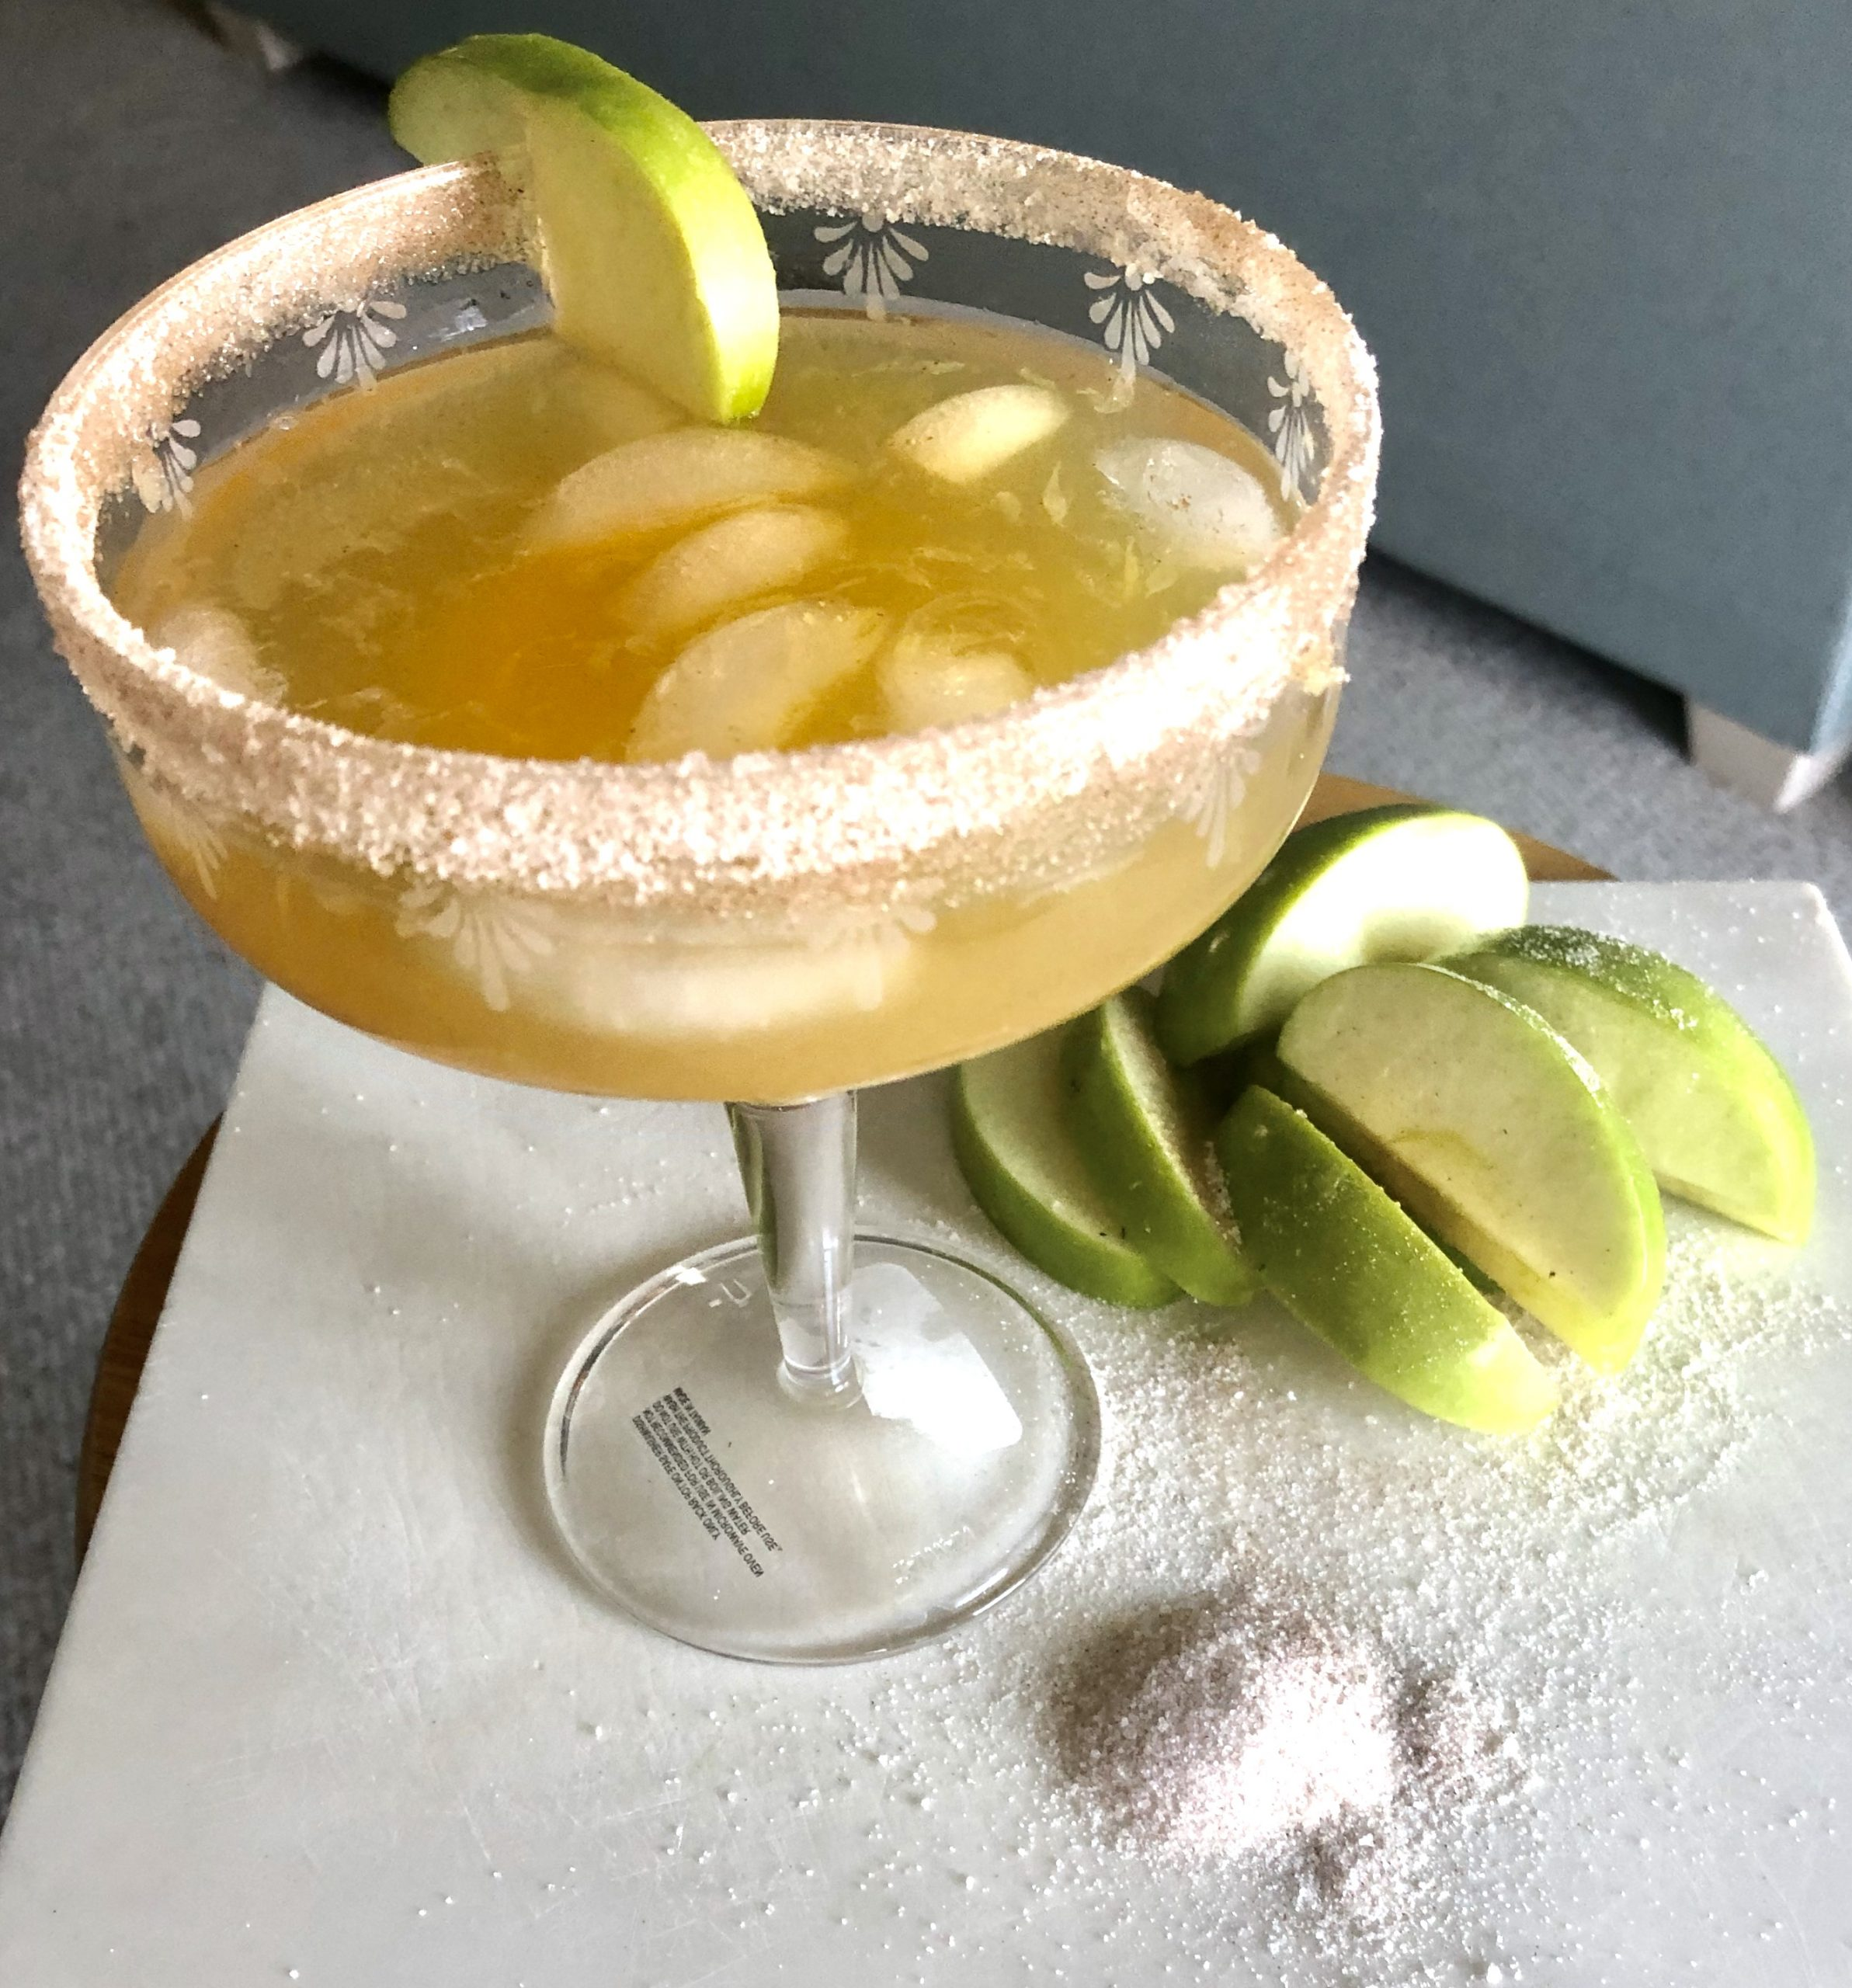 Apple Cider Pear Margarita in a glass rimmed with cinnamon nutmeg sugar and garnished with granny smith apple slices